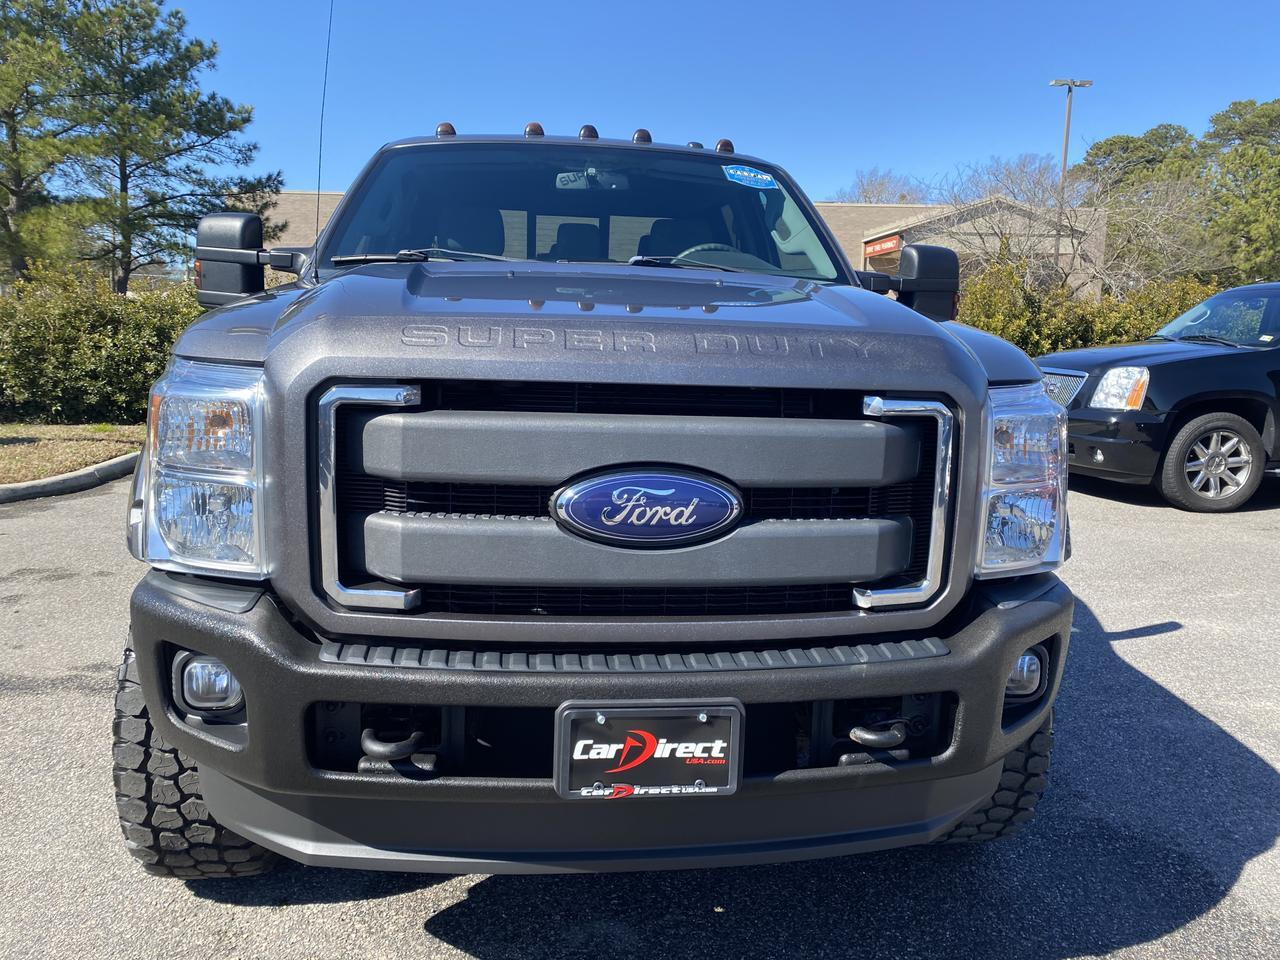 2014 FORD F-250 SD XLT CREW CAB 4X4, LIFTED, BACKUP CAM, PARKING SENSORS, BLUETOOTH, AUX/USB PORT, 1 OWNER, CLEAN! Virginia Beach VA